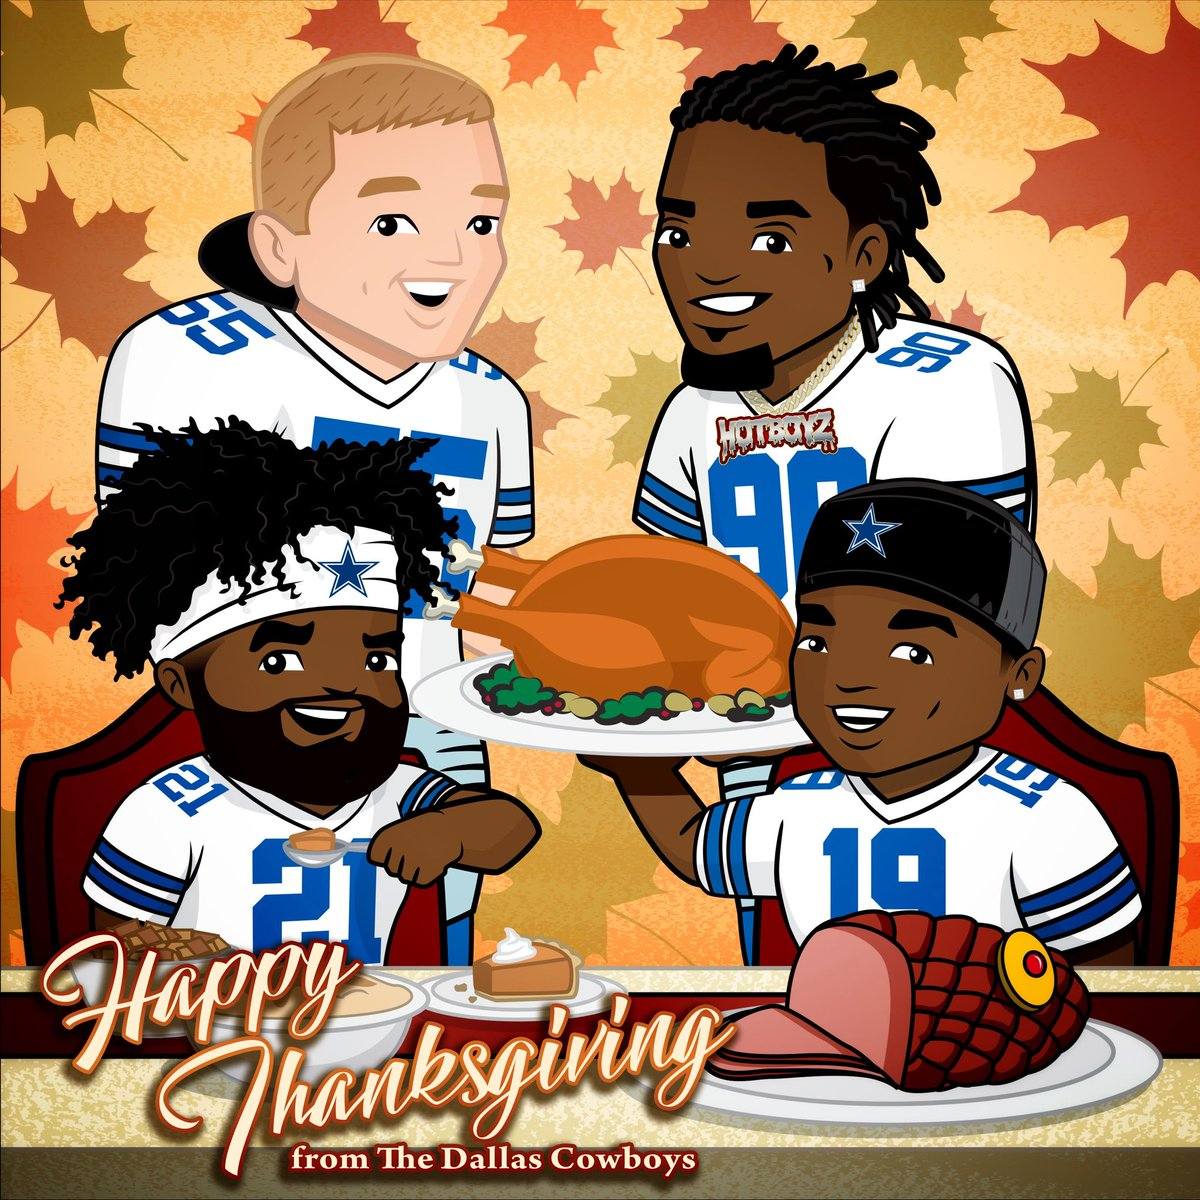 #HappyThanksgiving from our #DallasCowboys family to yours!